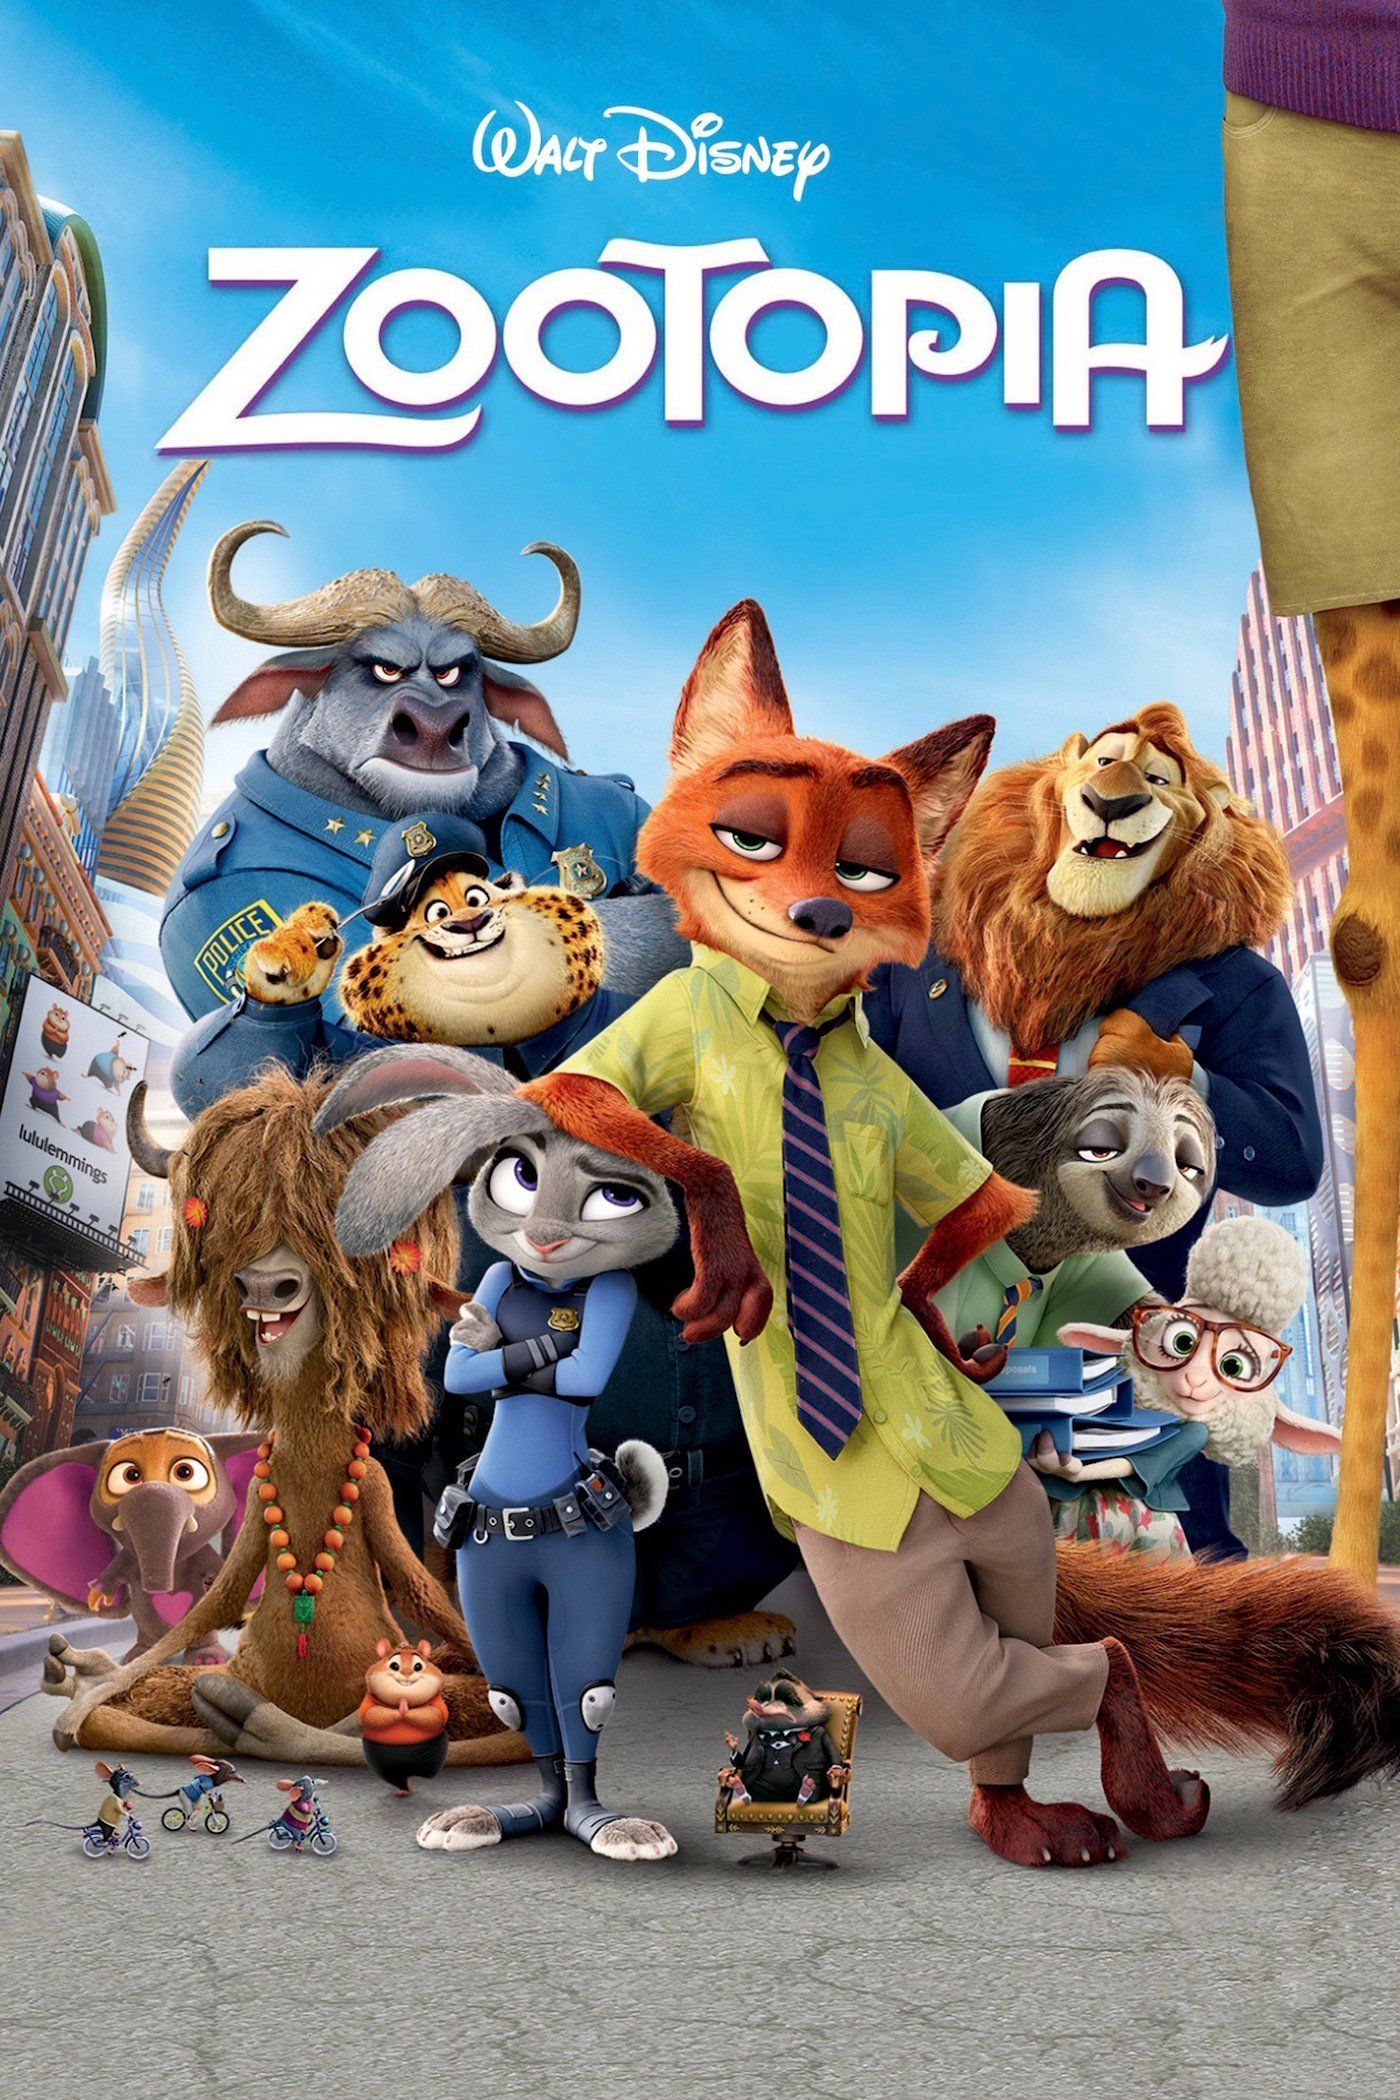 watch zootopia movie online for free